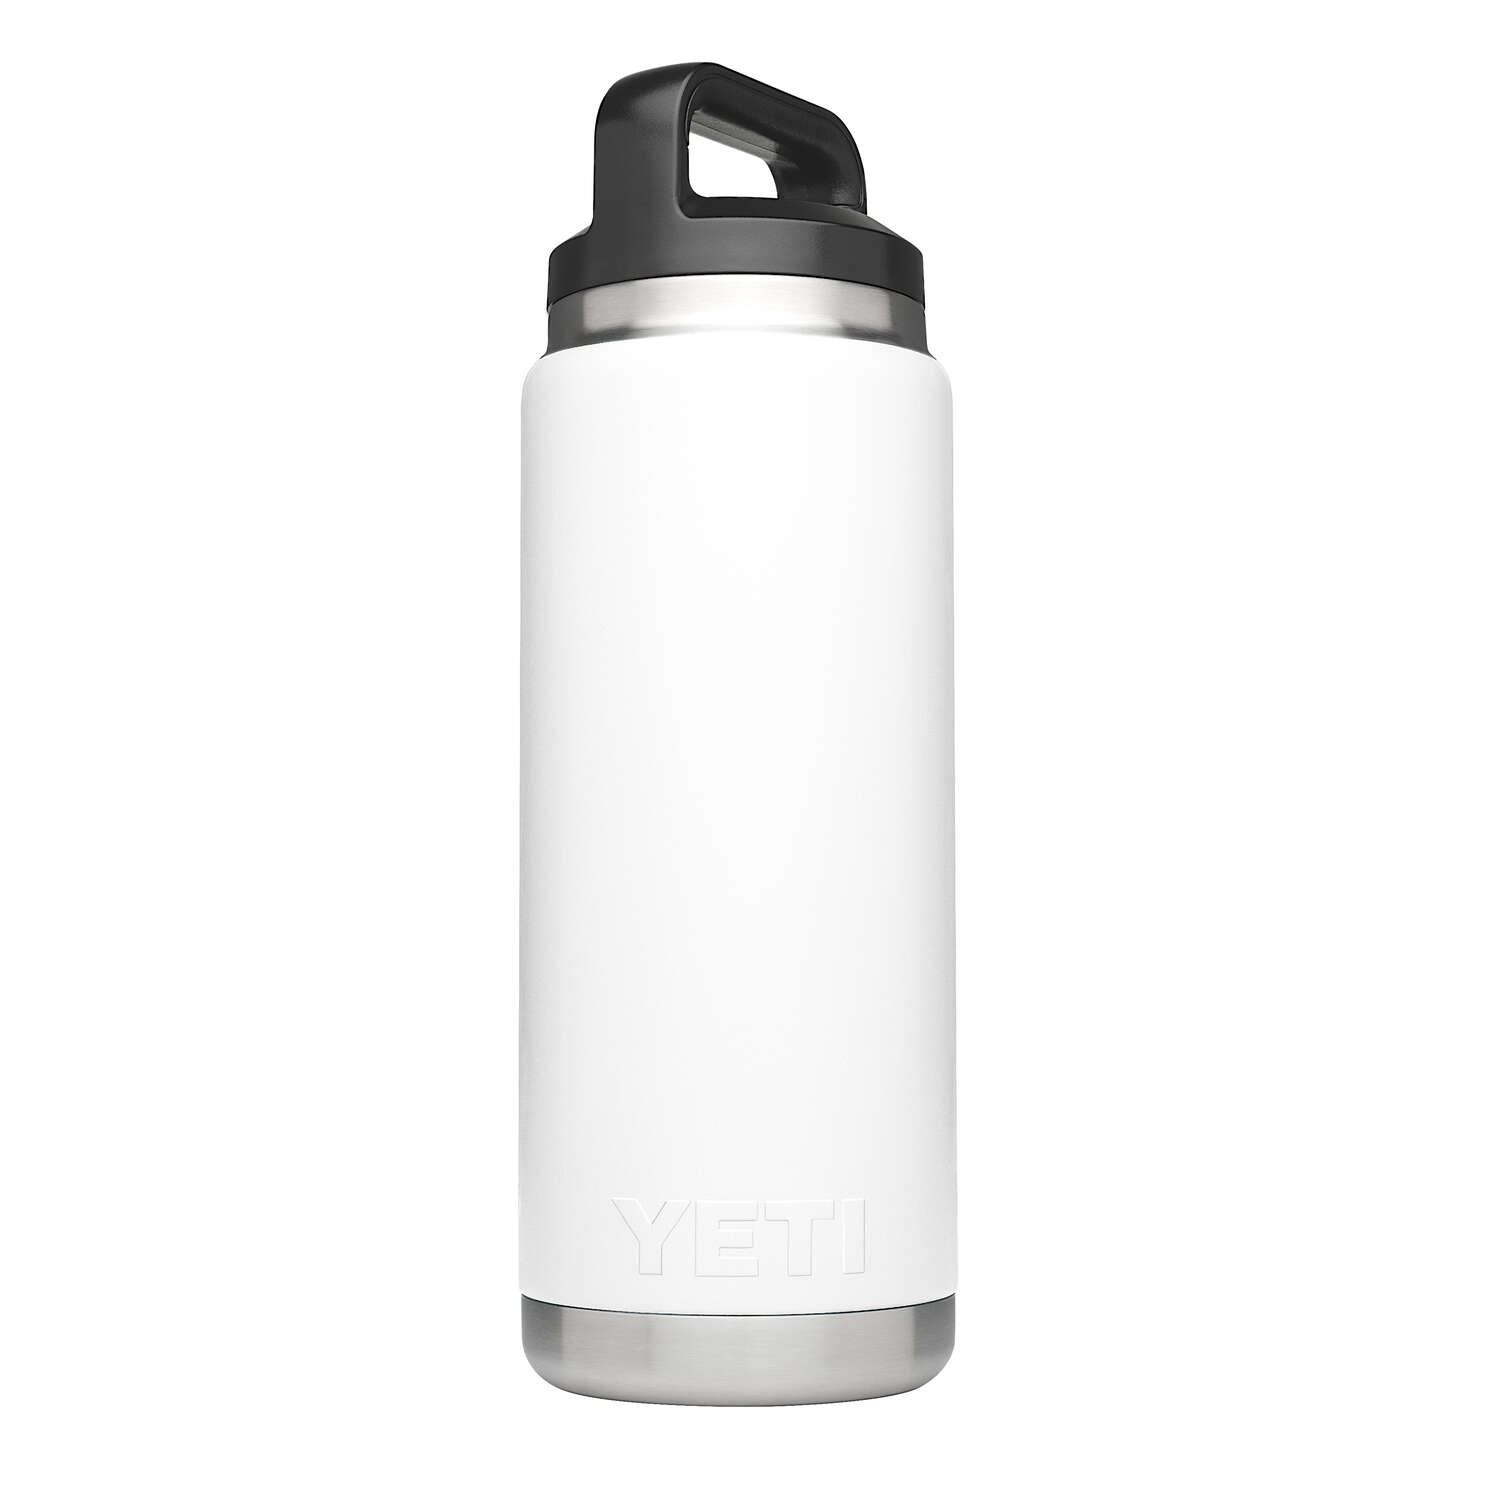 YETI  Rambler  White  Stainless Steel  Beverage Bottle  26 oz. BPA Free